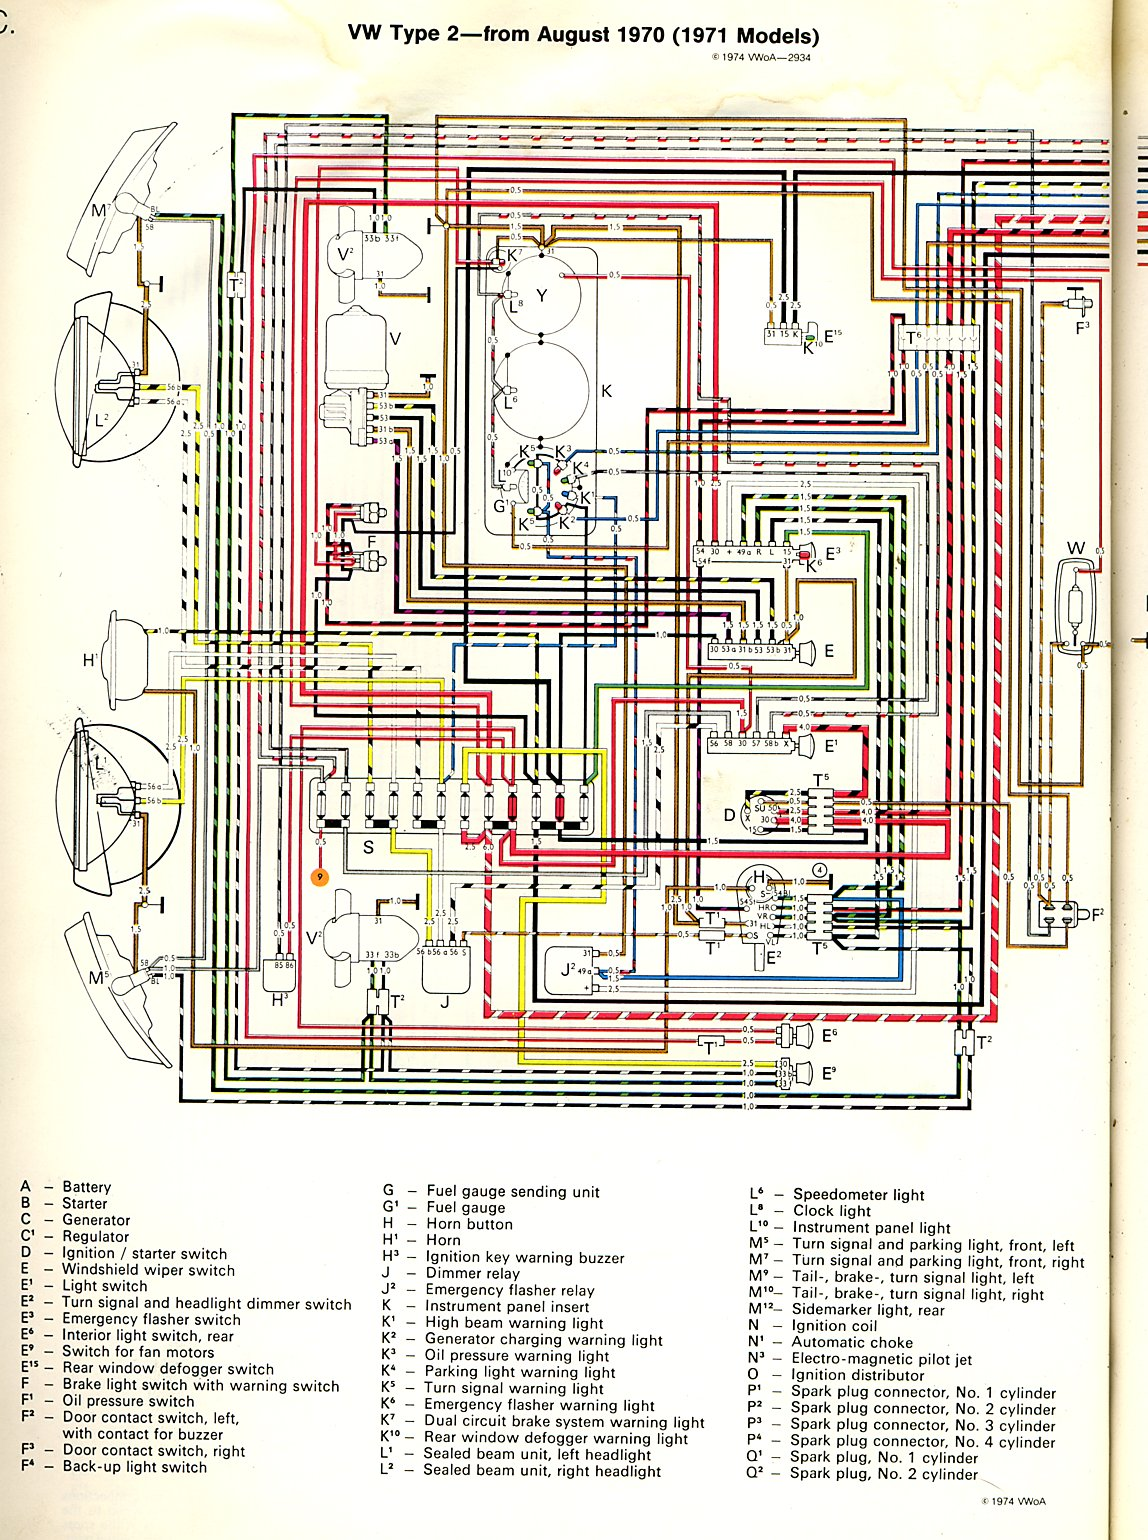 baybus_71a thesamba com type 2 wiring diagrams 1978 vw bus fuse box diagram at fashall.co